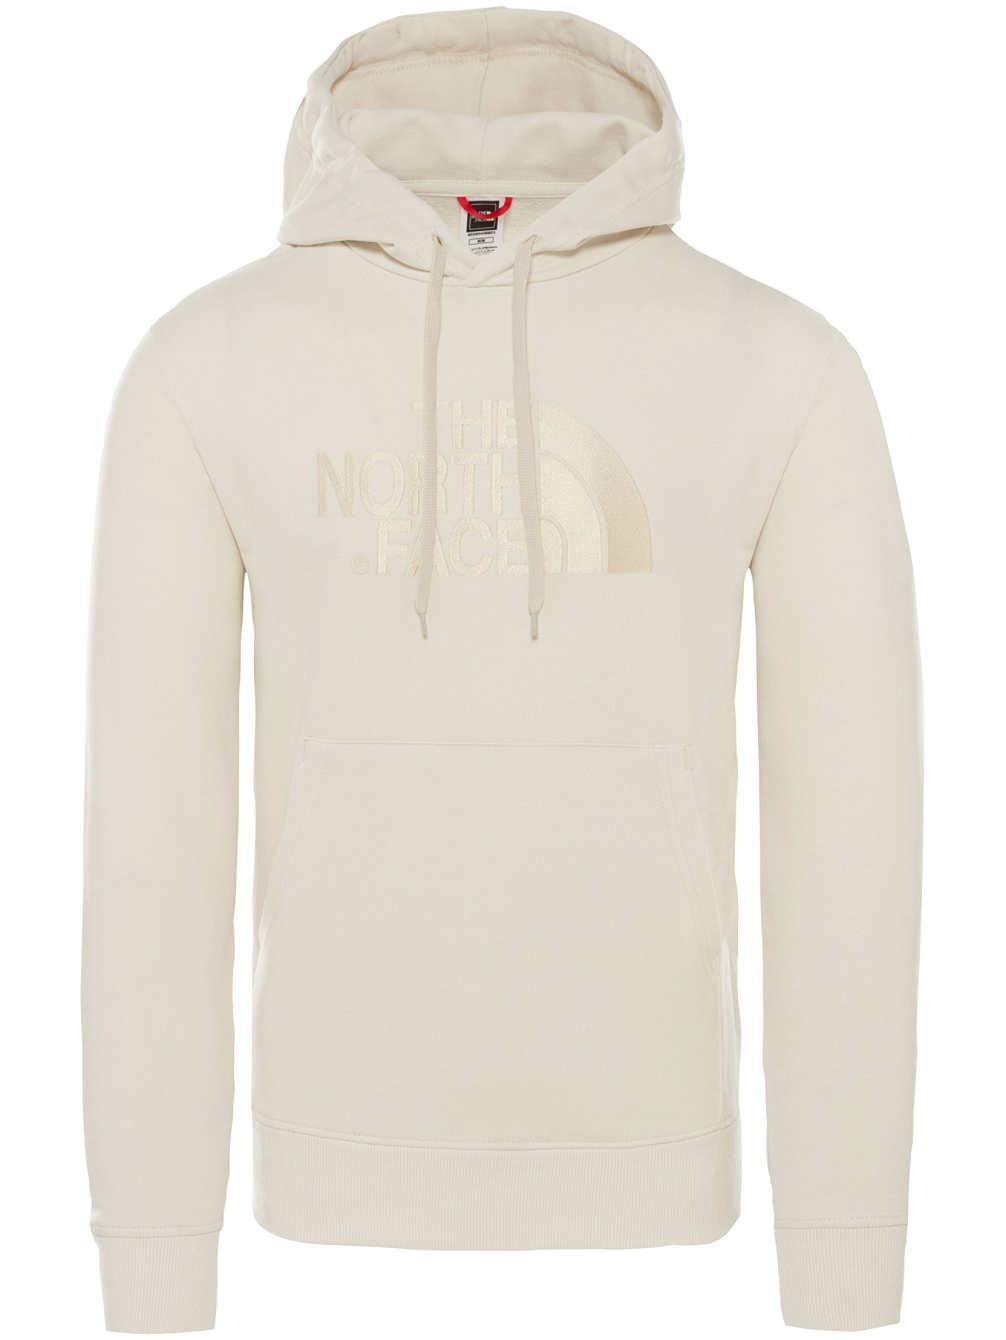 The North Face Drew Peak Felpa Sportiva con Cappuccio Uomo